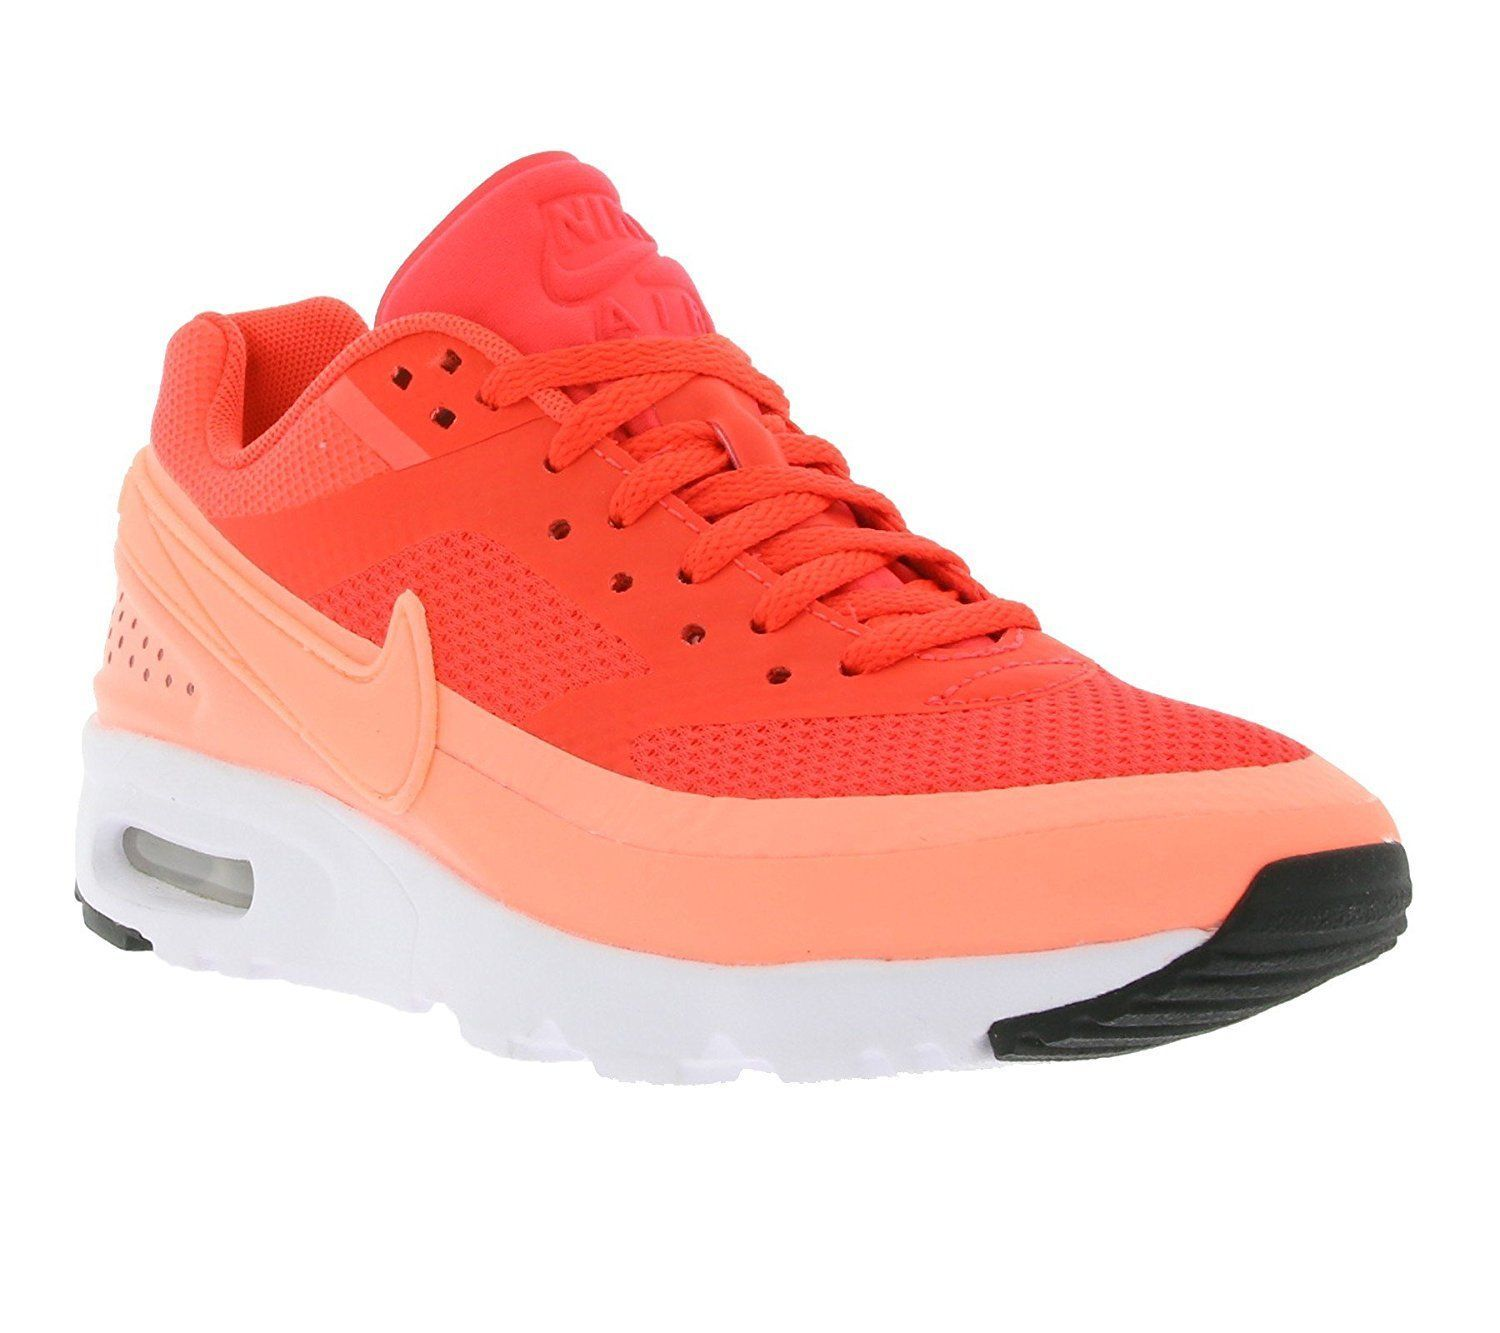 eae2d5d7d3923 Women's Nike Air Max BW Ultra Running Shoes, 819638 600 Size 8 Crimson/At  Pink/W - $129.95